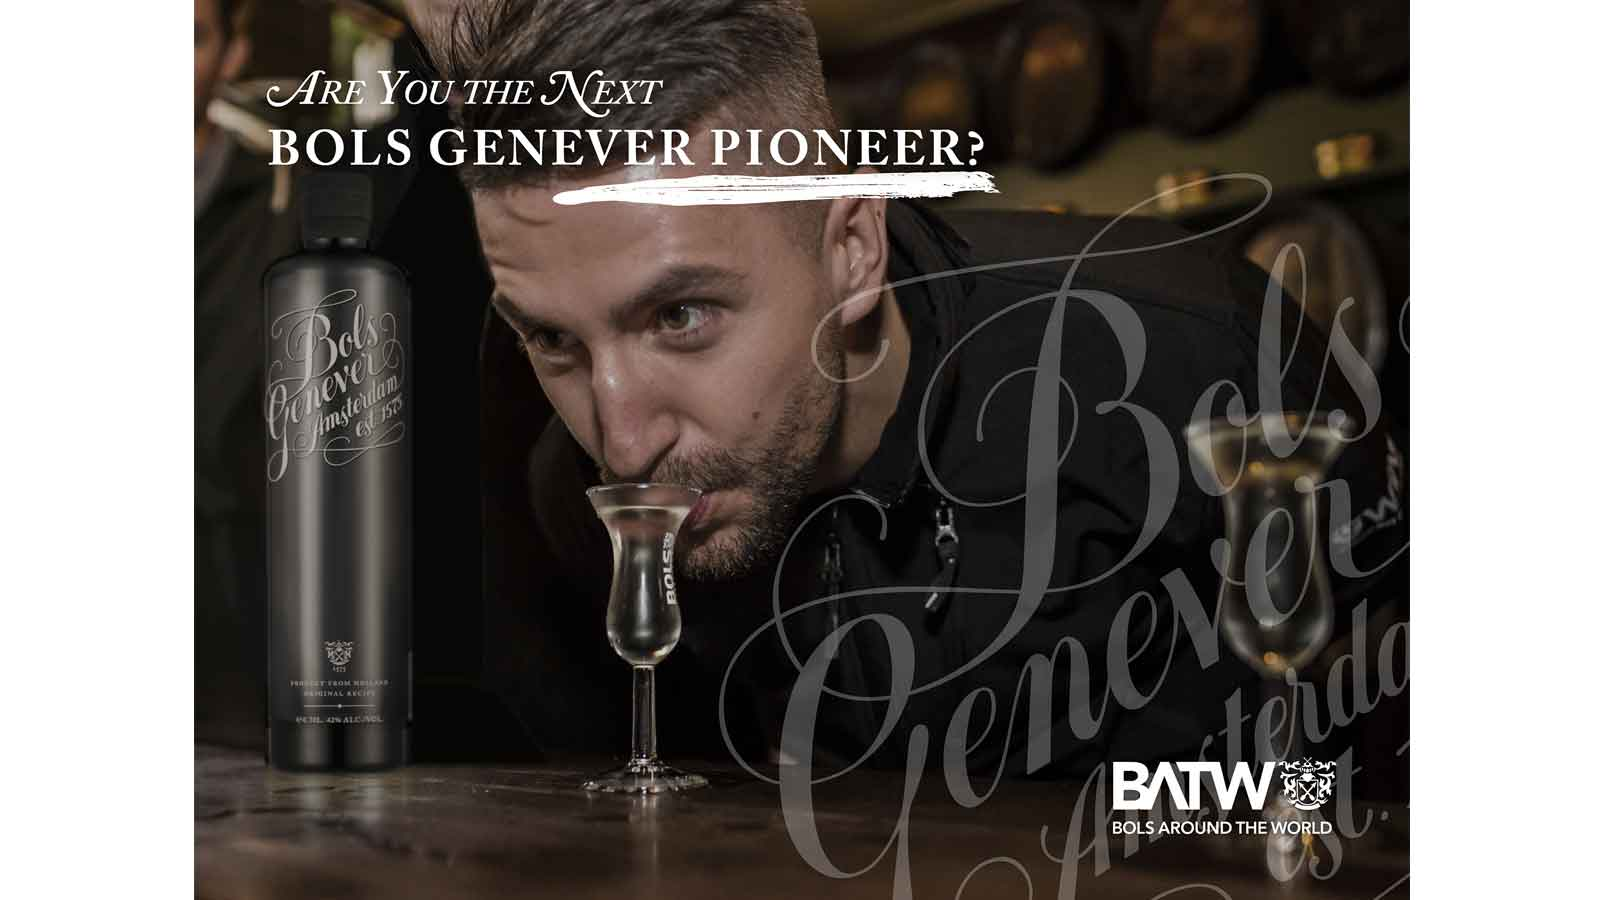 Are you the next Bols Genever Pioneer?